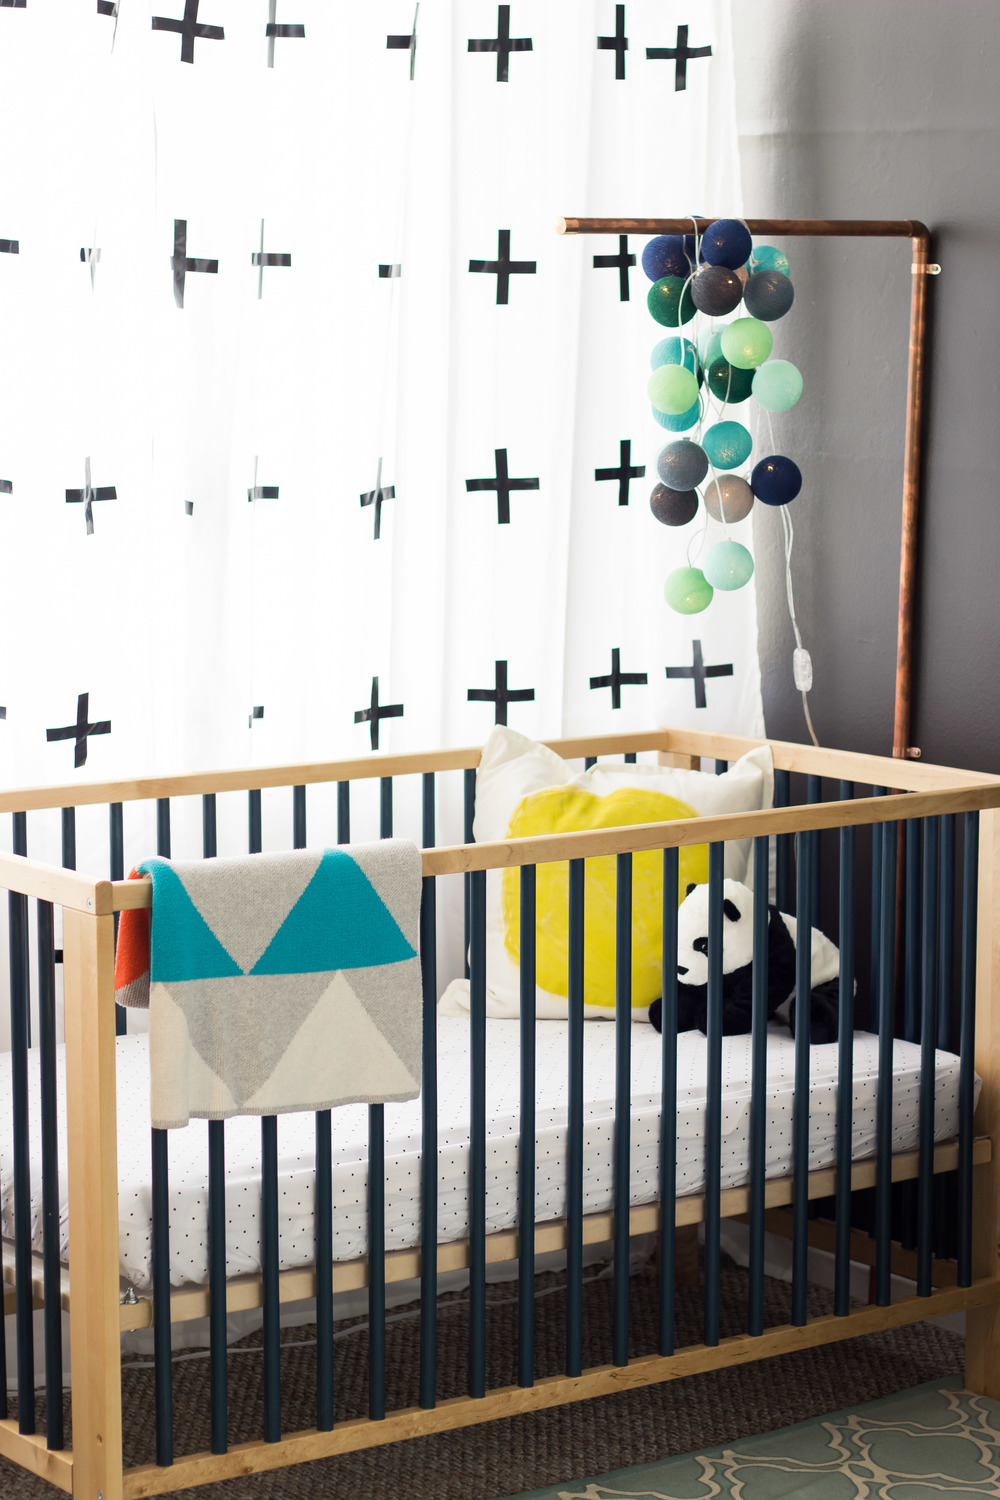 Crib price range - I Loved The Look Of Cribs With Painted Slats Only Problem Was Those Cribs Were Way Out Of My Price Range So I Got The Ikea Gulliver Crib In Natural Wood